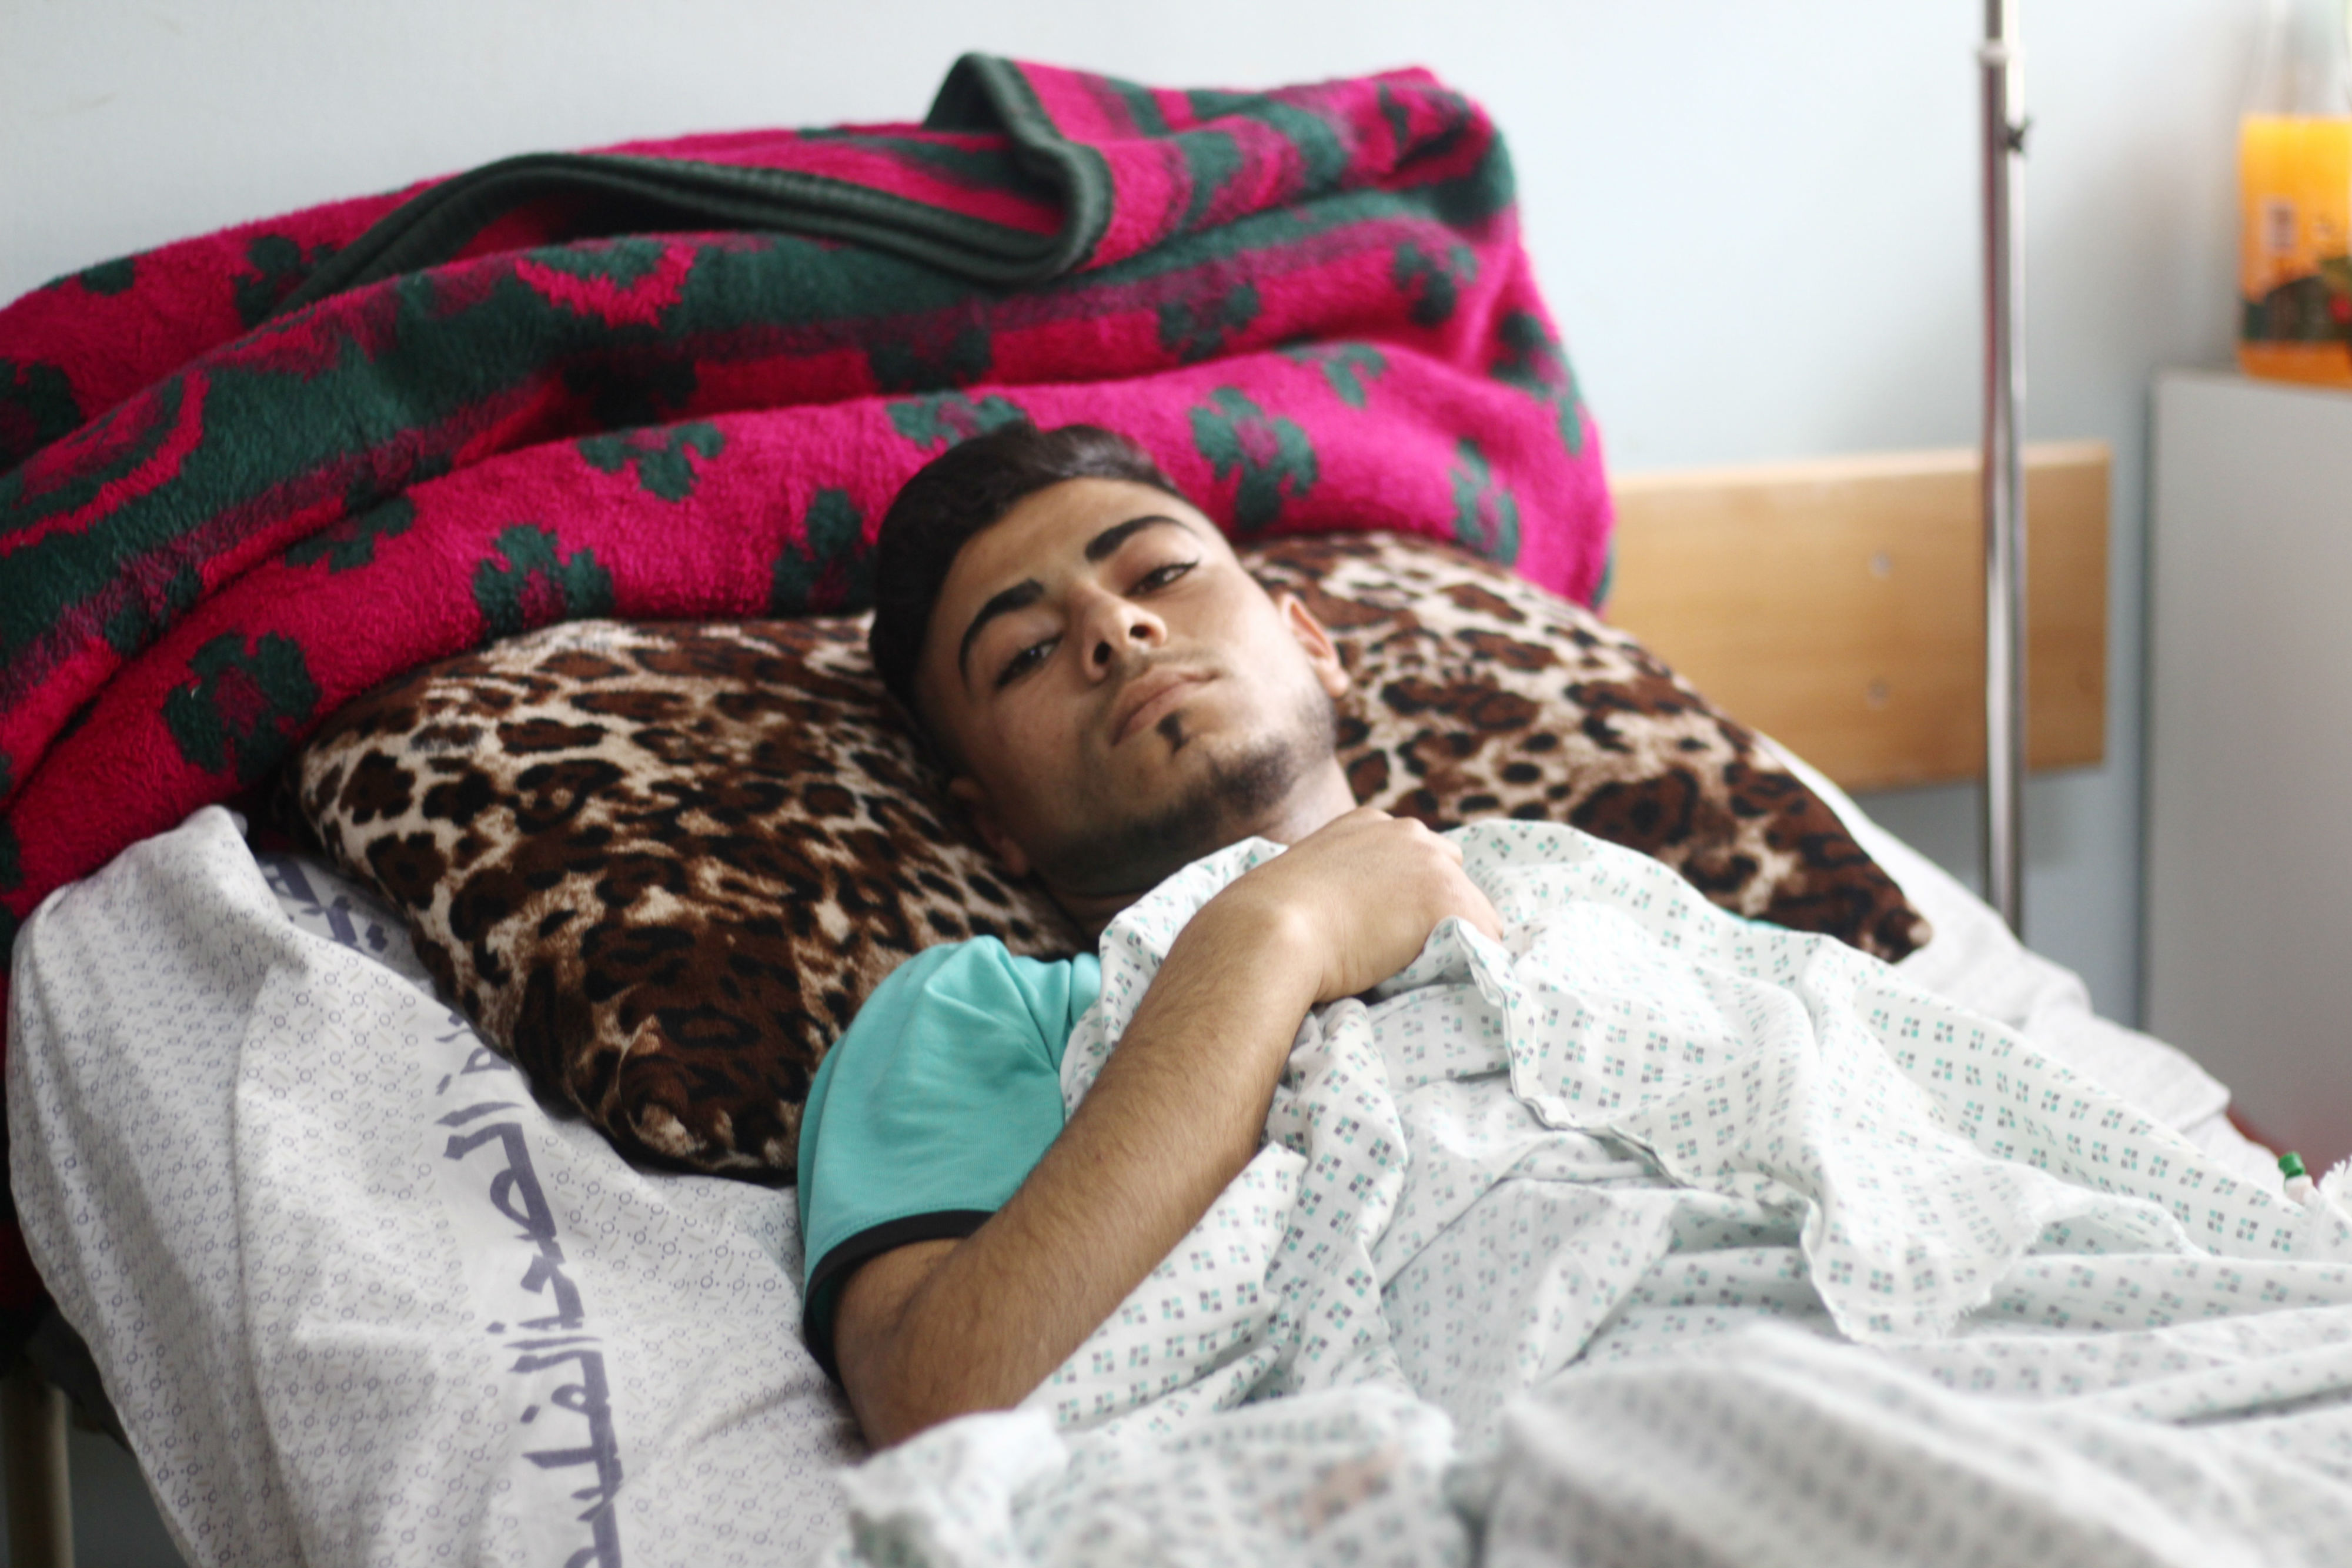 Moataz al-Najar recovering in hospital in Khan Yunus (MEE/Walled Mosleh)